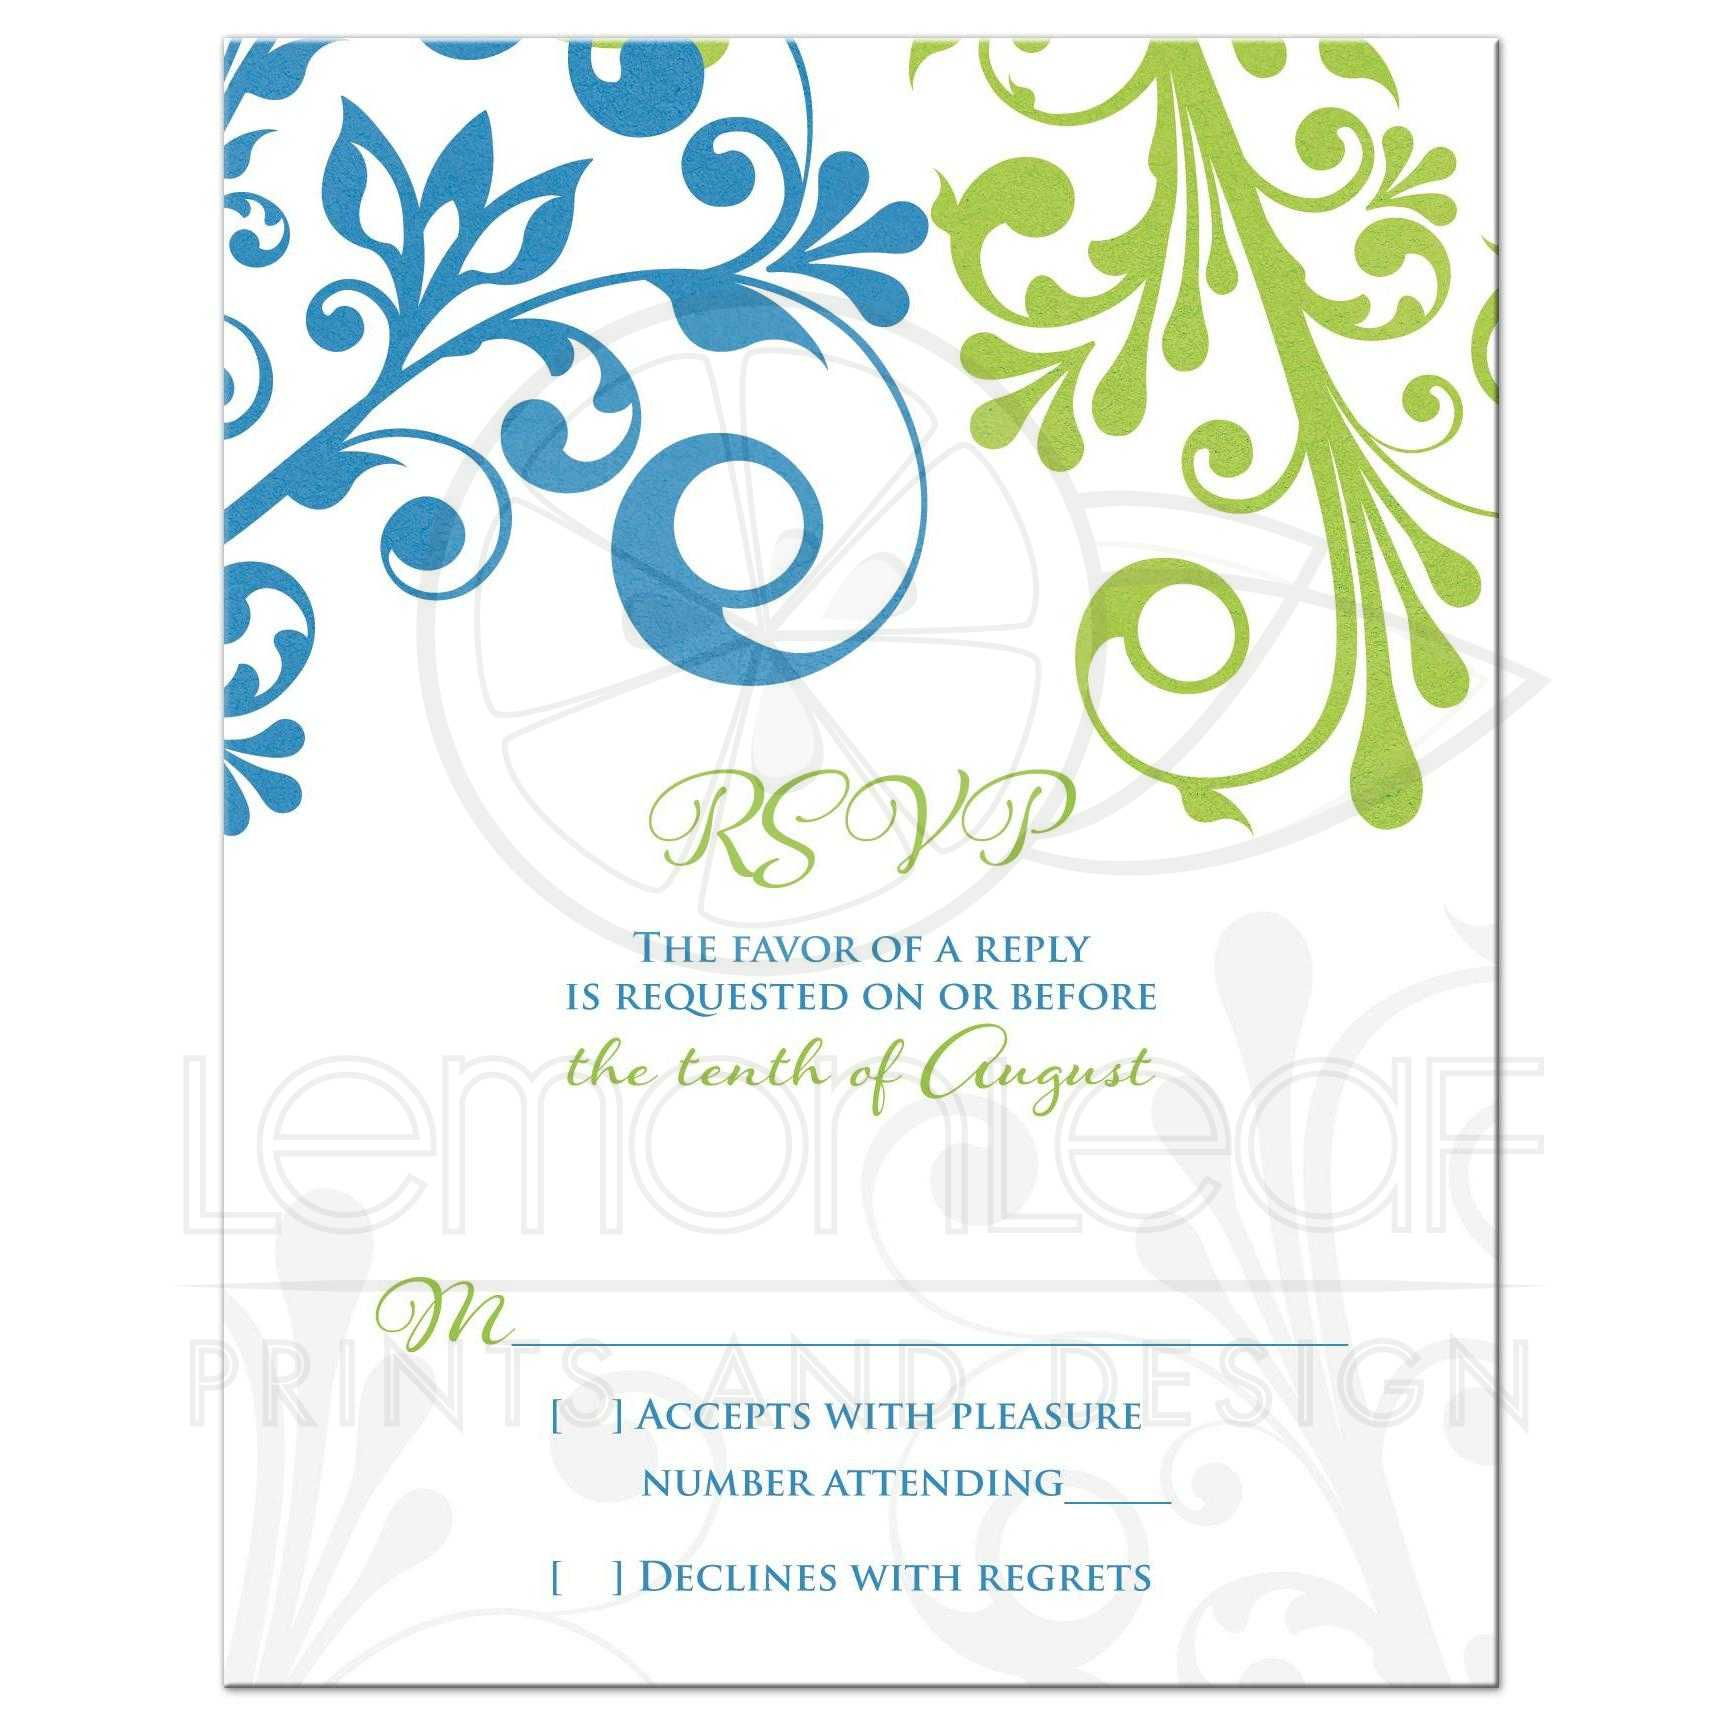 wedding invitation reply card - Funf.pandroid.co